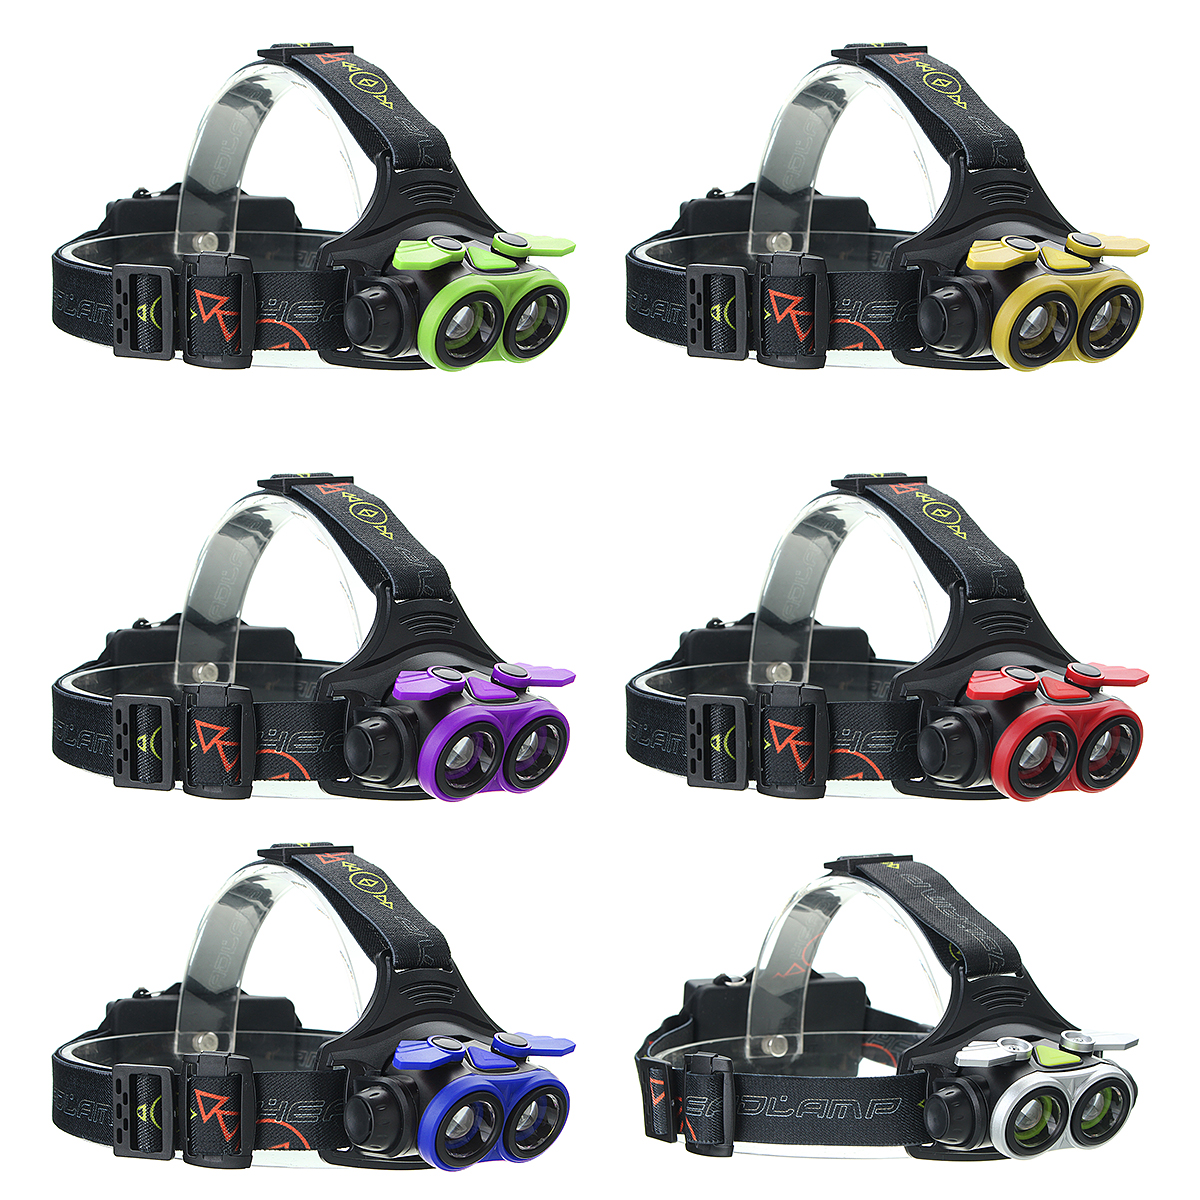 Elfeland 4000Lumens  T6 4 Modes LED Headlamp walking lamps Headlight USB Rechargeable with USB Cable